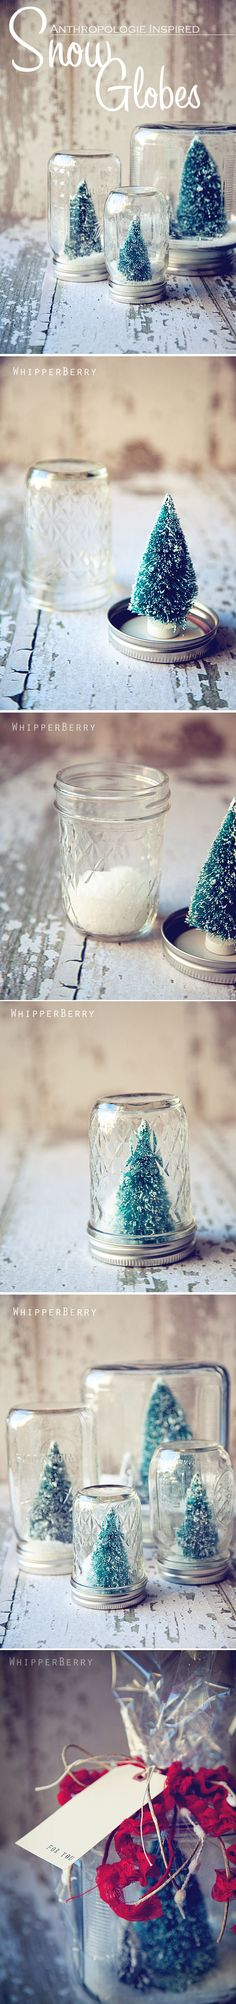 fun & creative idea -- snowglobes made out of jars!